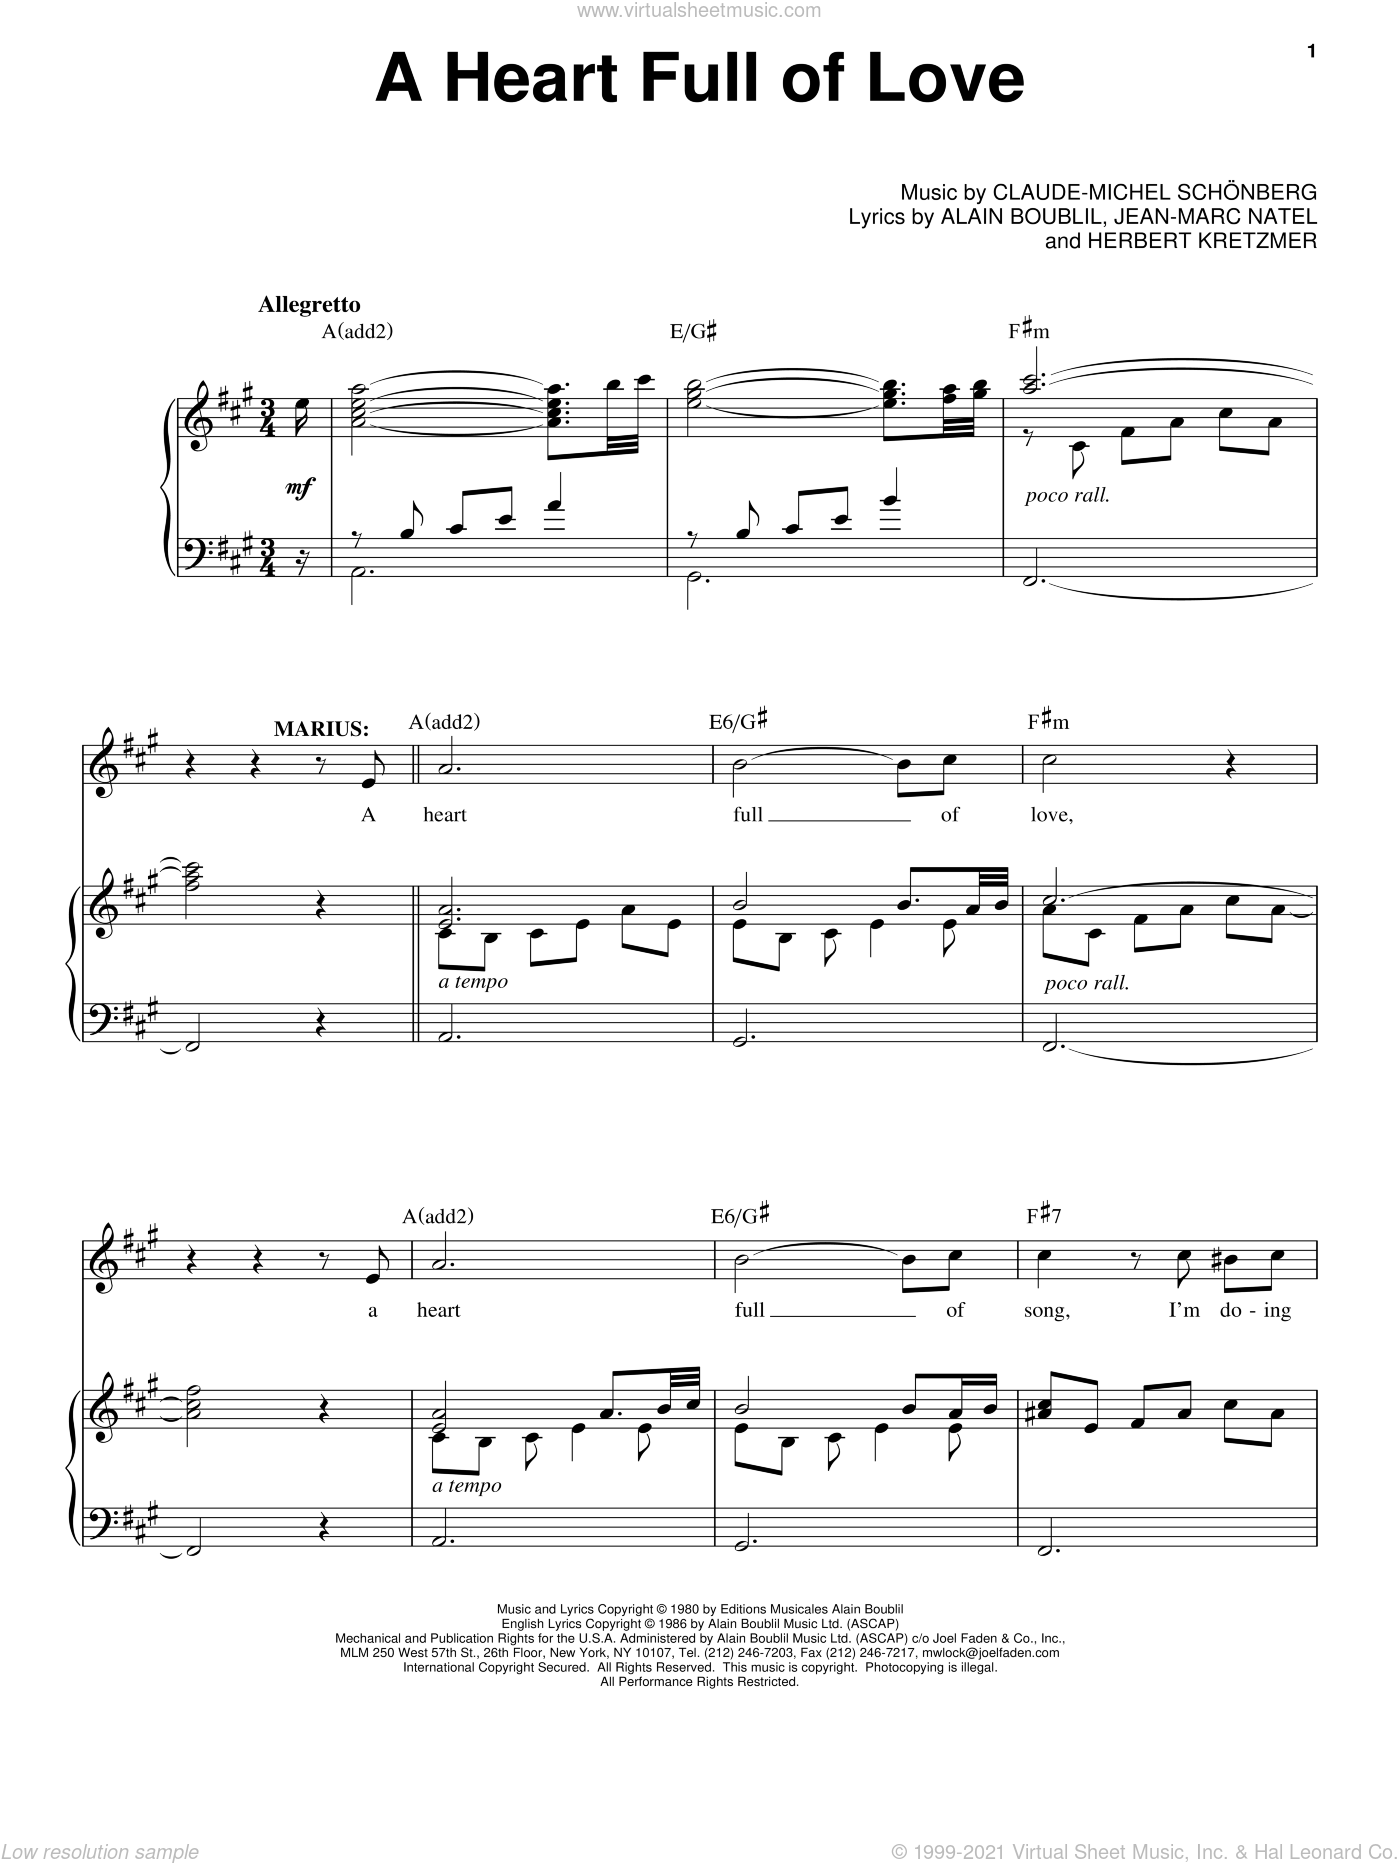 A Heart Full Of Love sheet music for voice and piano by Claude-Michel Schonberg and Alain Boublil, intermediate skill level